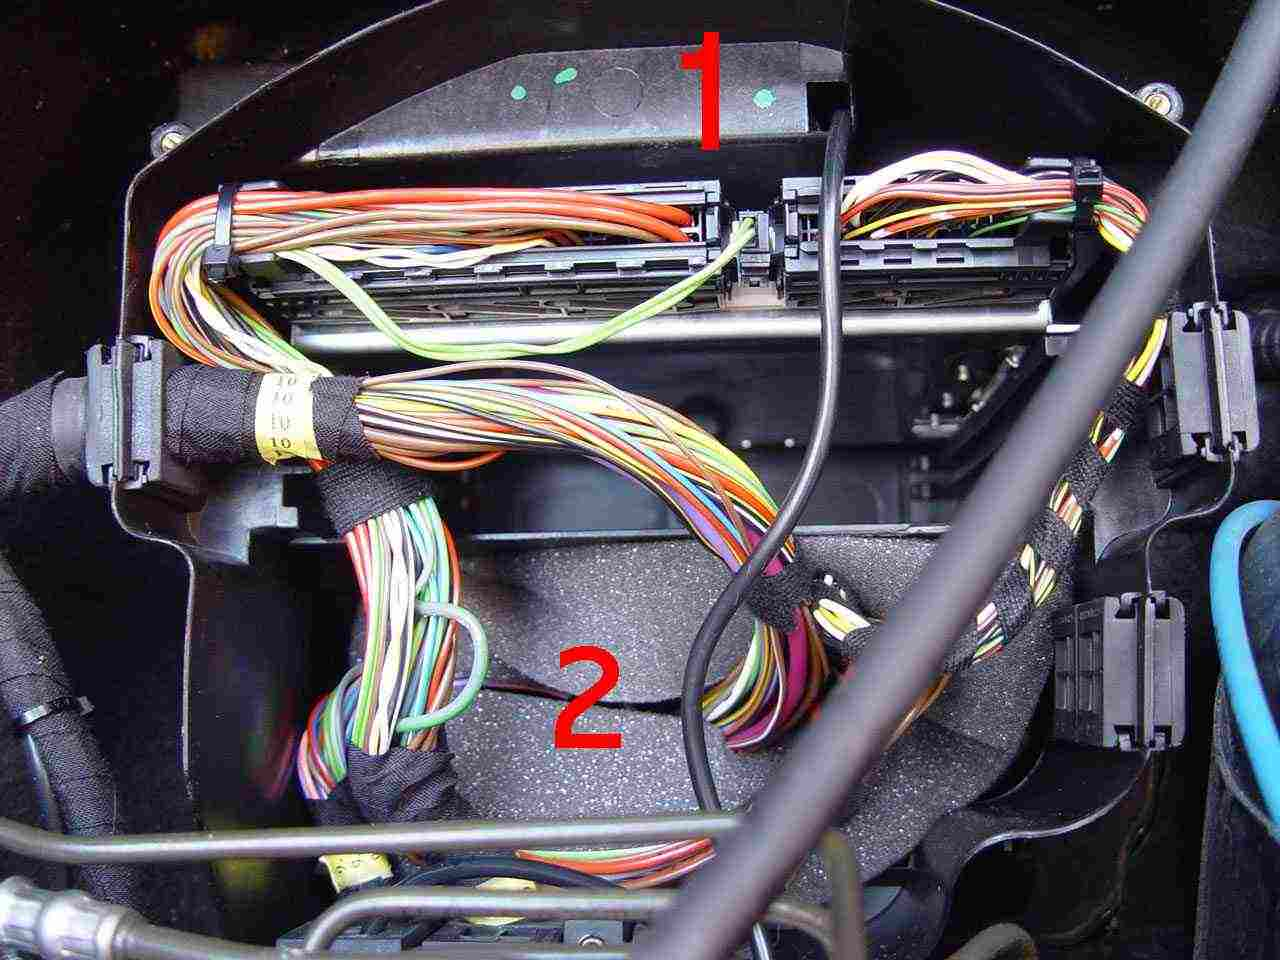 Bert Rowes A Class Info Battery Compartment Fuses Relays 2002 Toyota Mr2 Engine Fuse Box Diagram The Middle Portion Of Where I Thought Would Find Was Filled With Removable Foam When Removed It Revealed Just And Empty